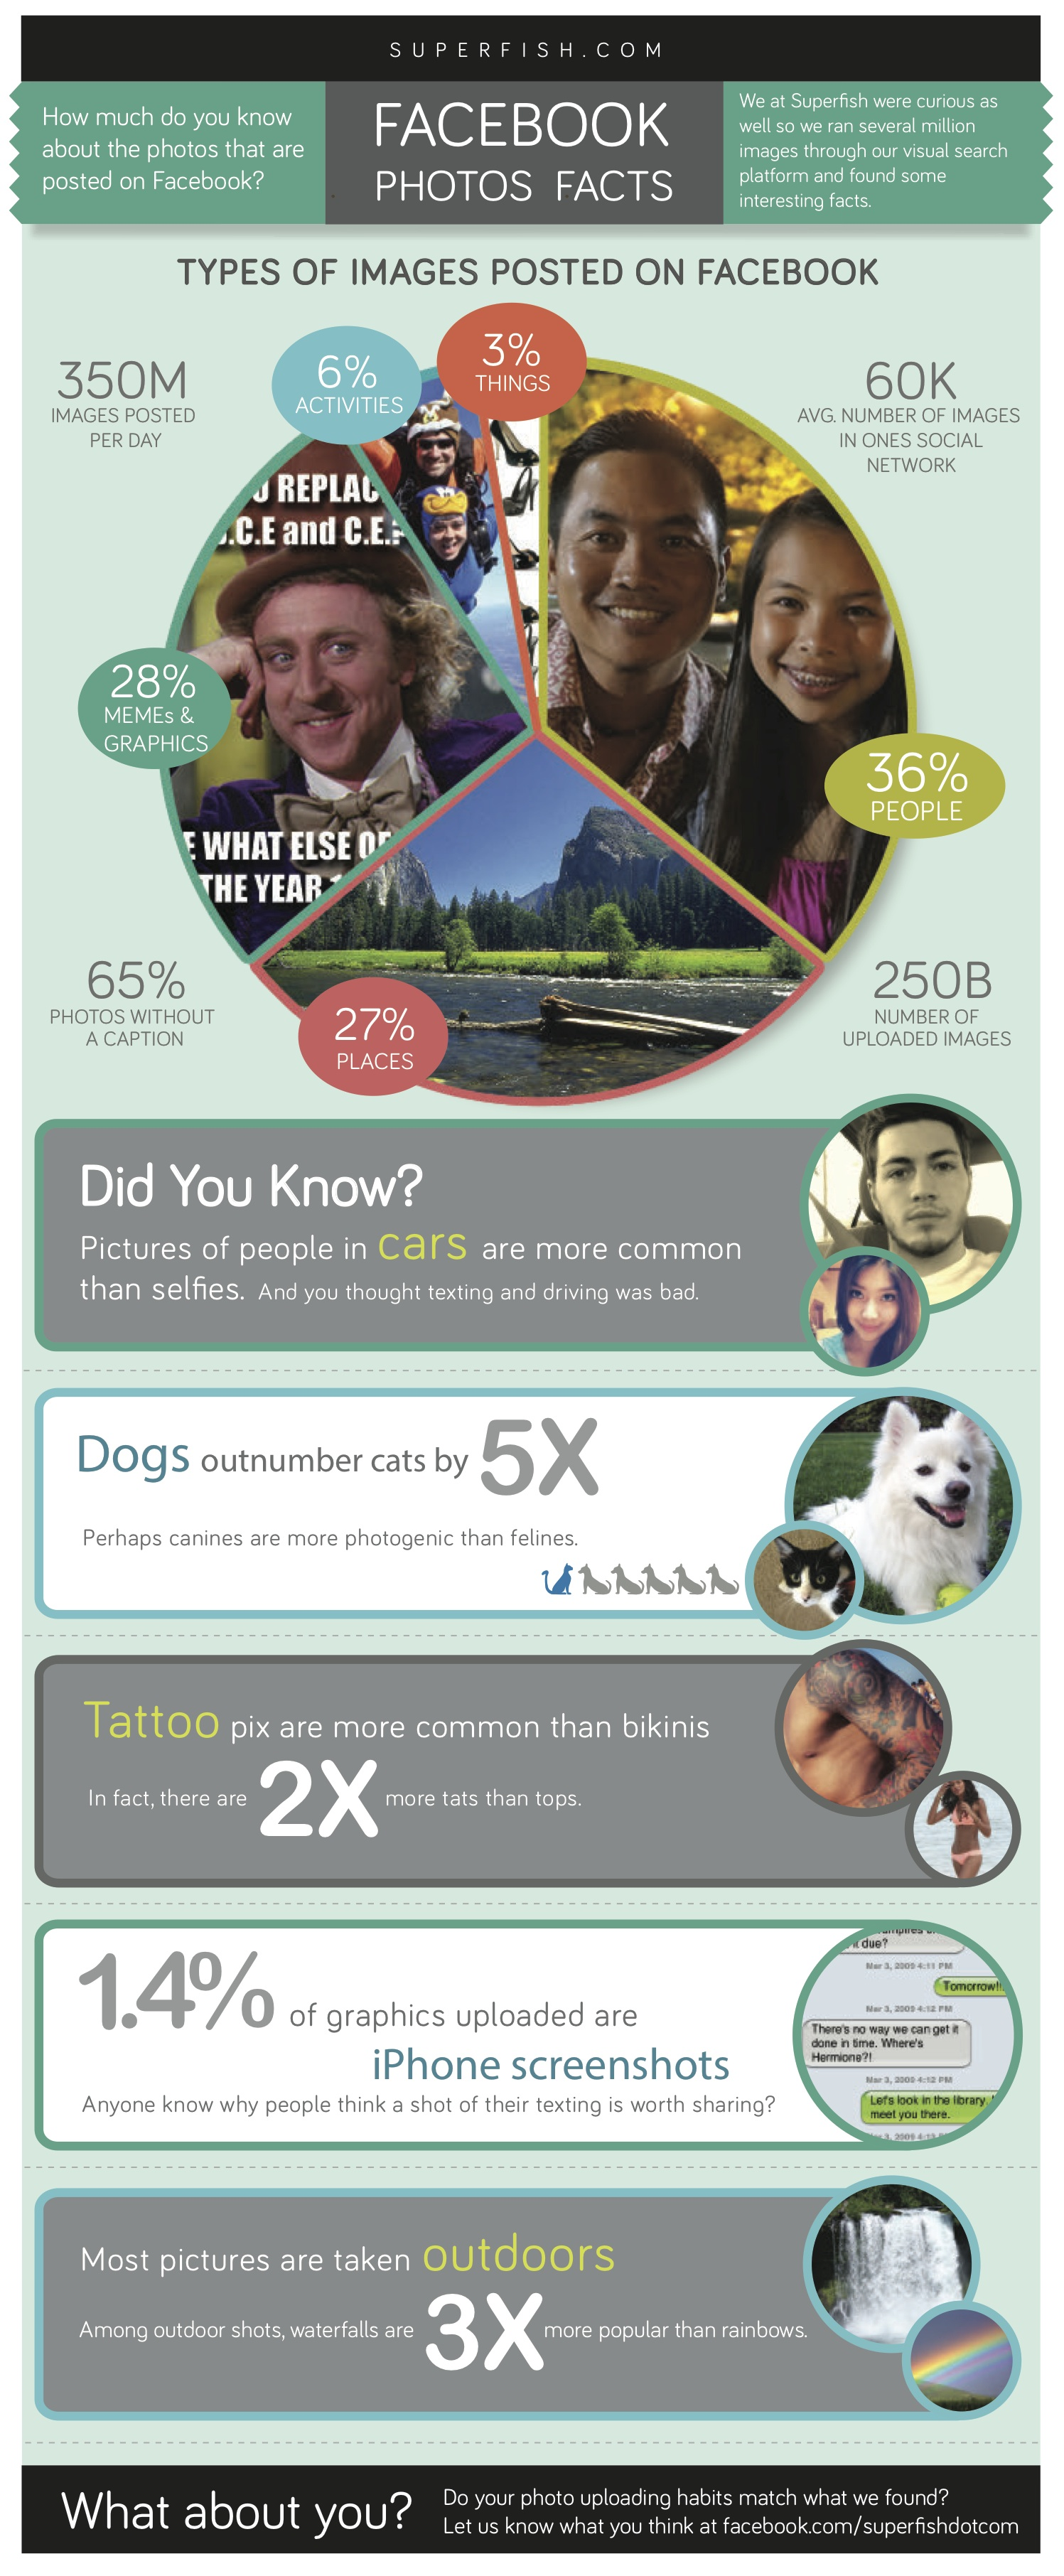 Facebook Photo Facts